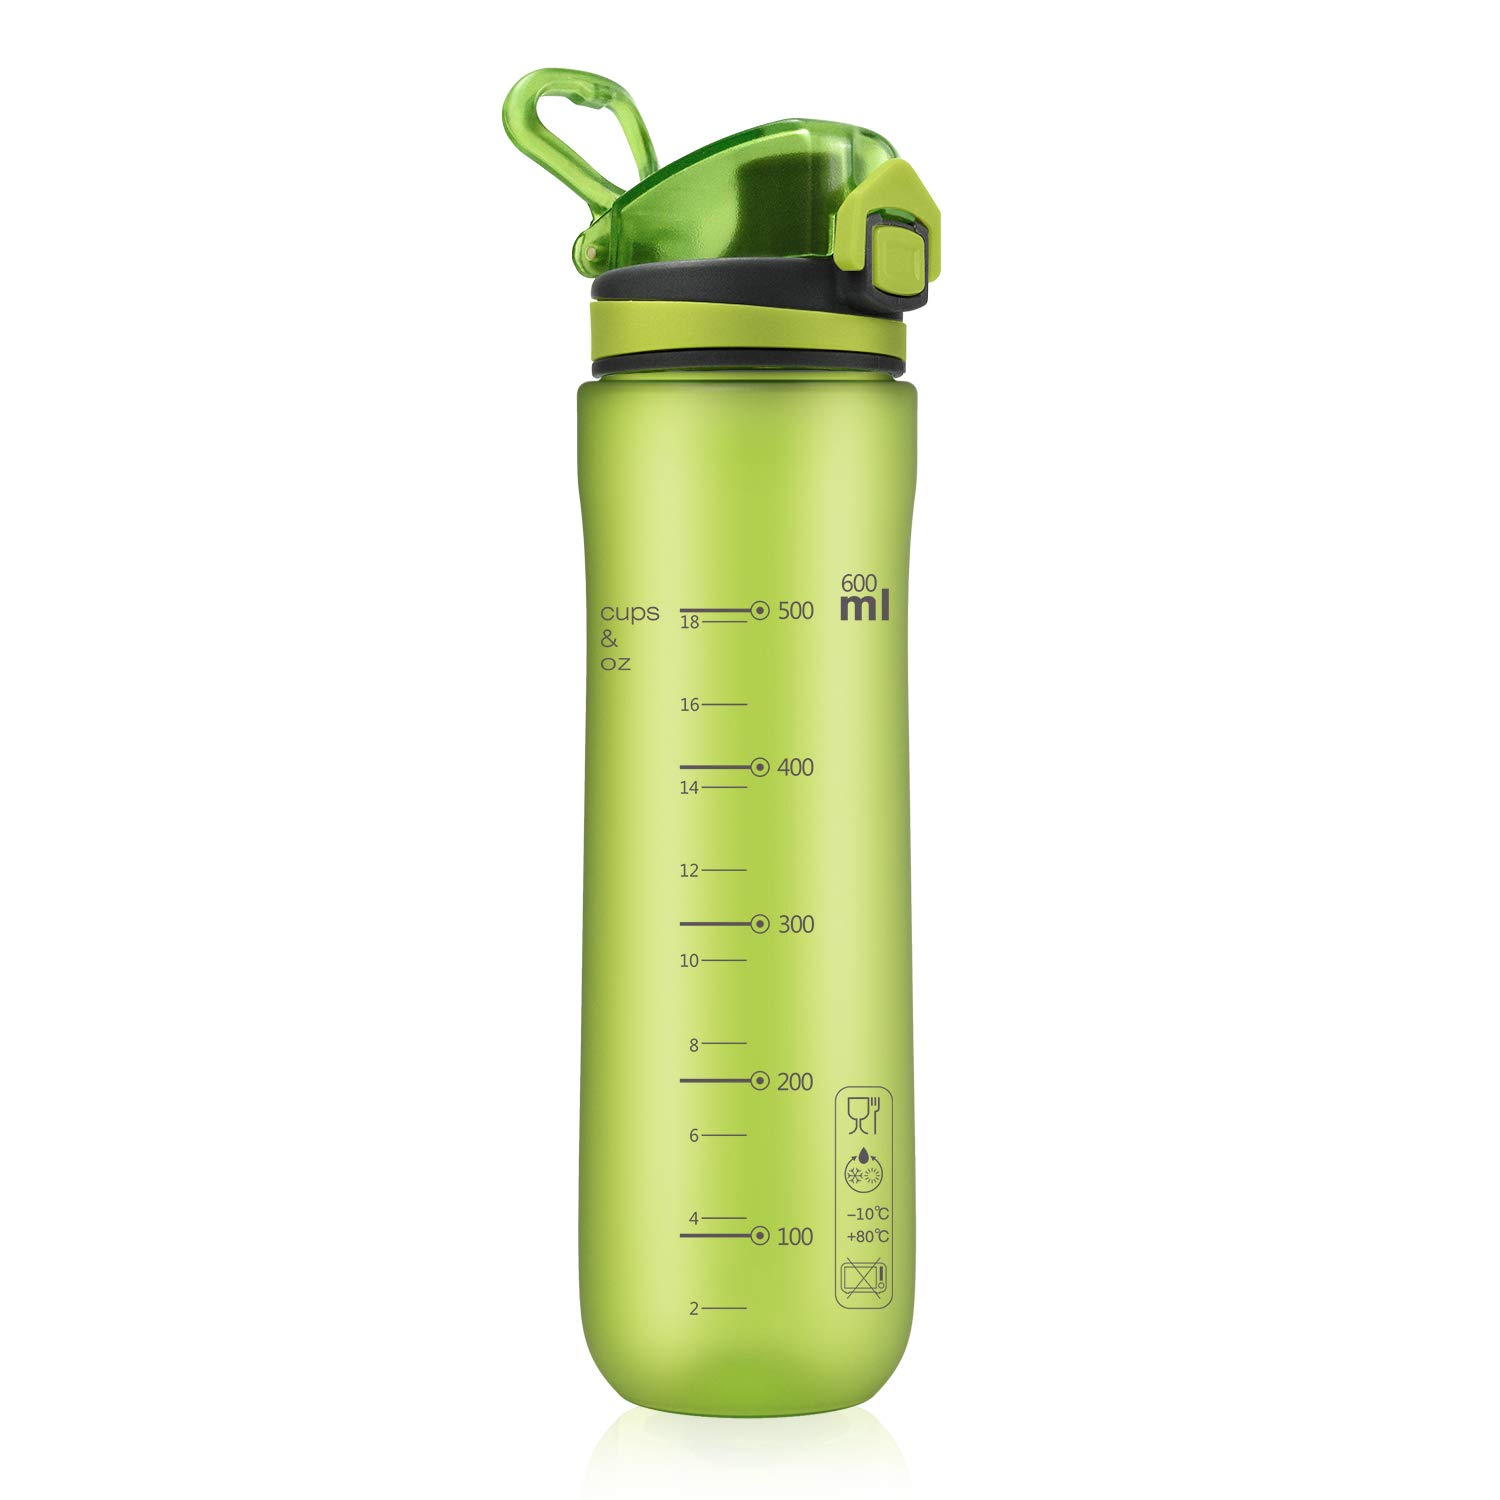 Letsfit Sports Water Bottle, BPA-Free Tritan Plastic Water Bottle with Locking Flip-Flop Lid, Leakpoof and Dustproof Cap, Carry Loop, 21oz Bottle for Outdoor Hiking Camping Travel (Frosted Green)